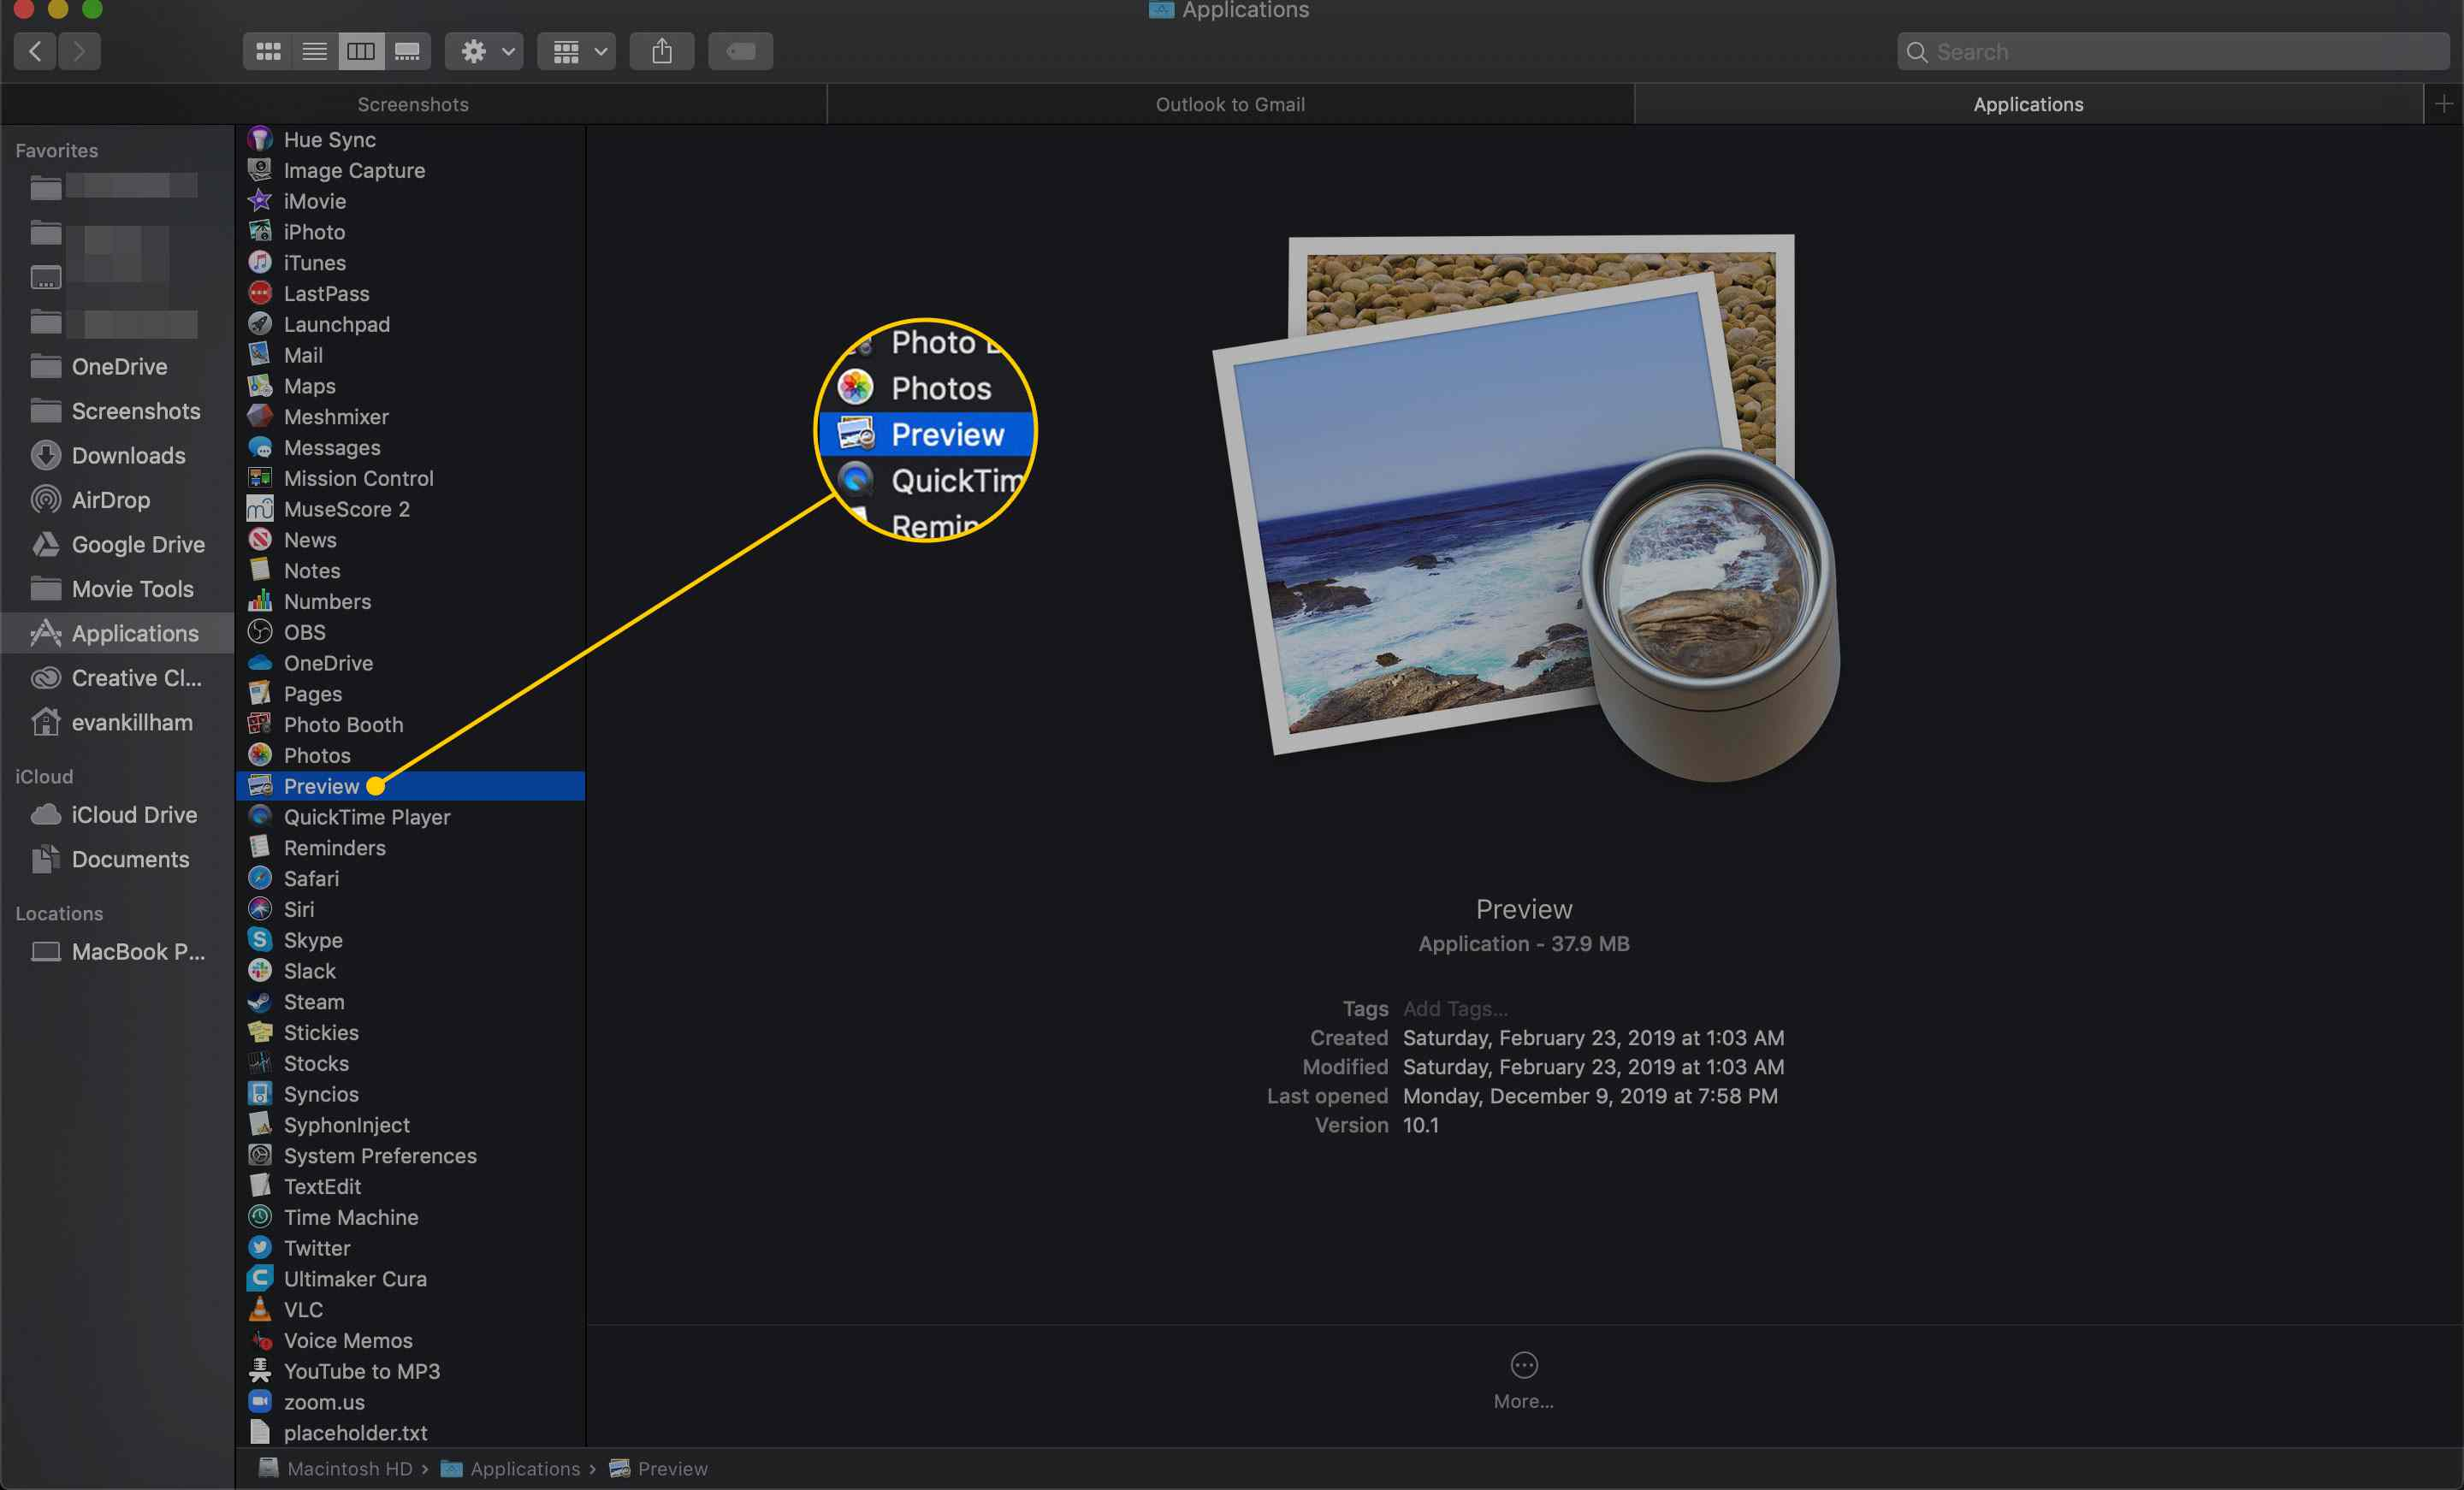 Preview application on a Mac